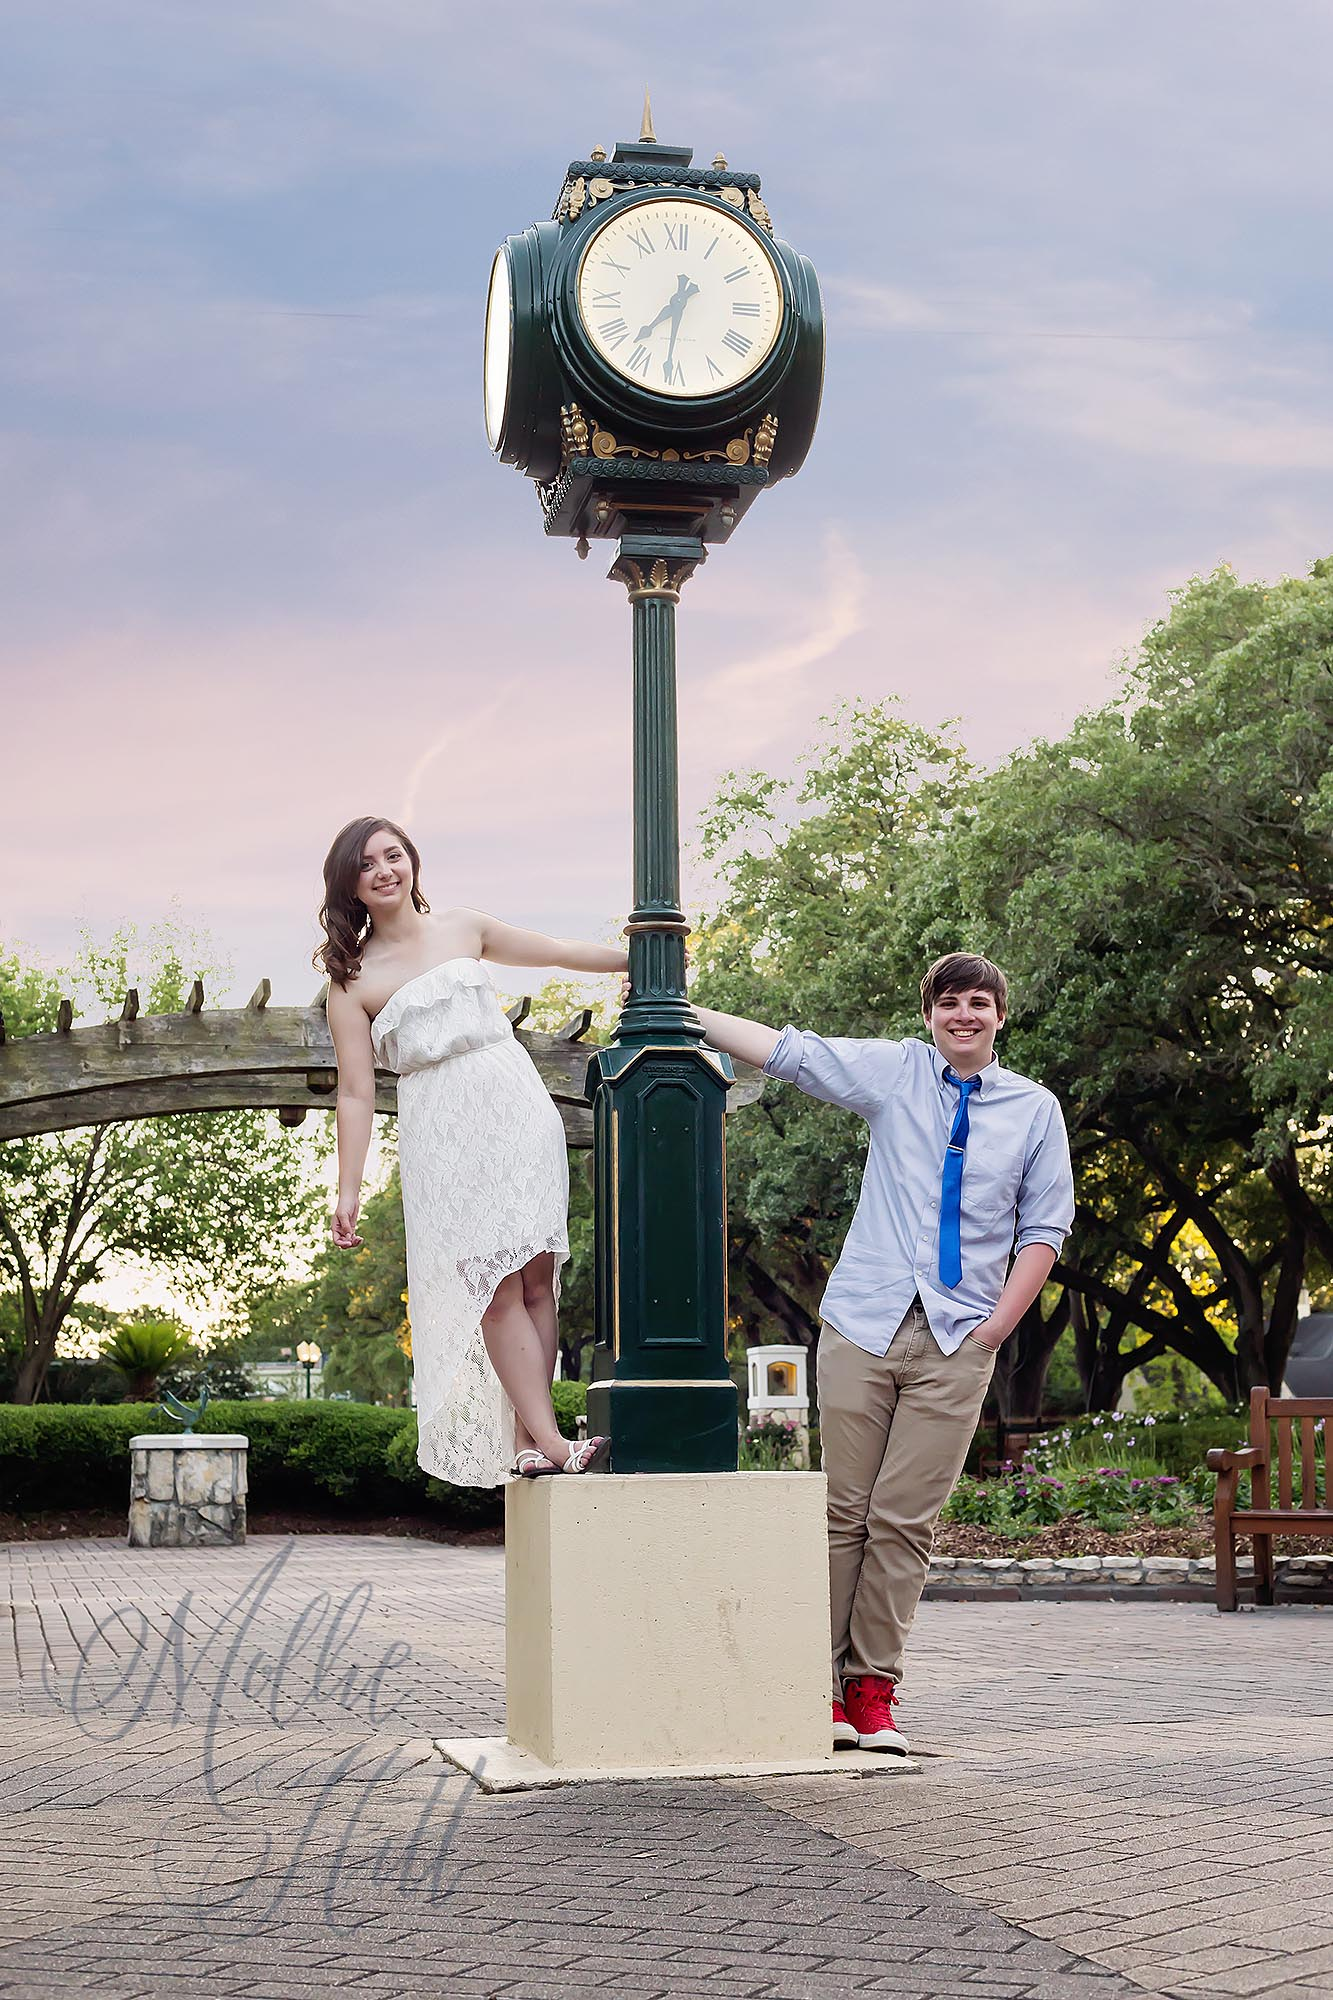 Senior couple posing leaning off of a clock tower in Helen's Garden